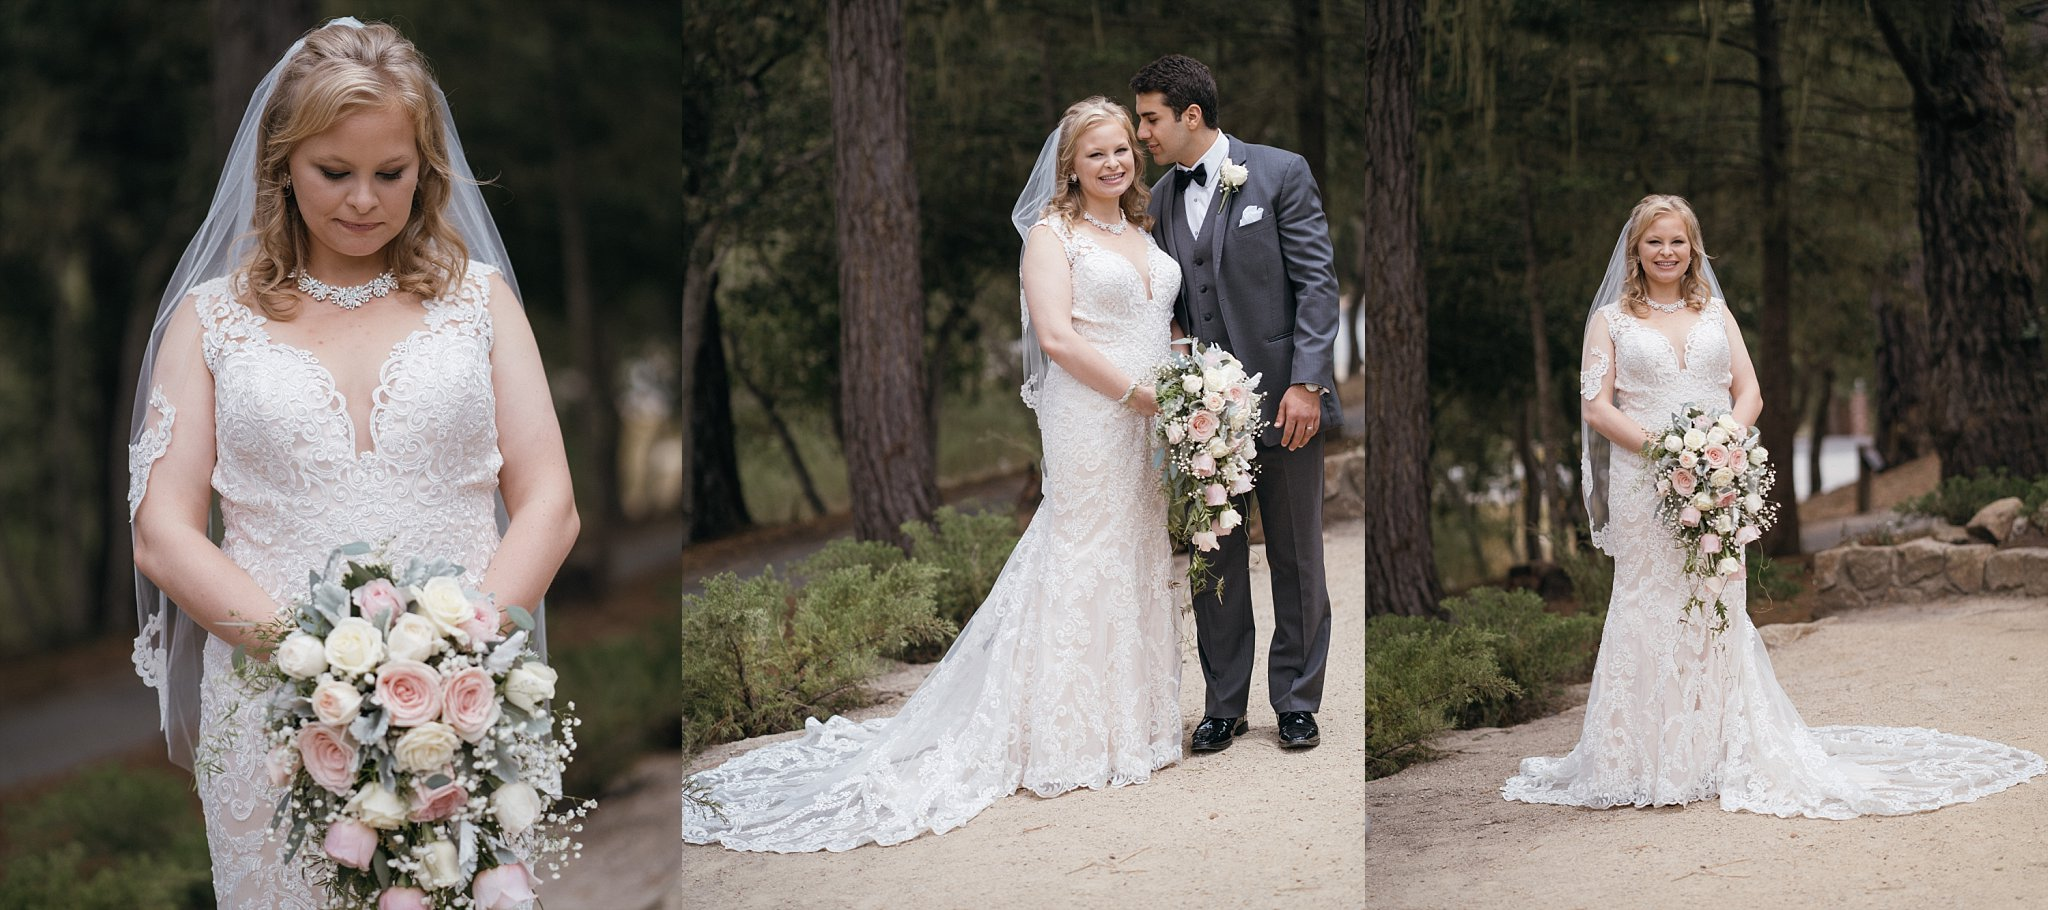 monterey-wedding-photographer-pebble-beach-church-in-the-forest-wedding-bride-groom-morgan-anthony_0031.jpg